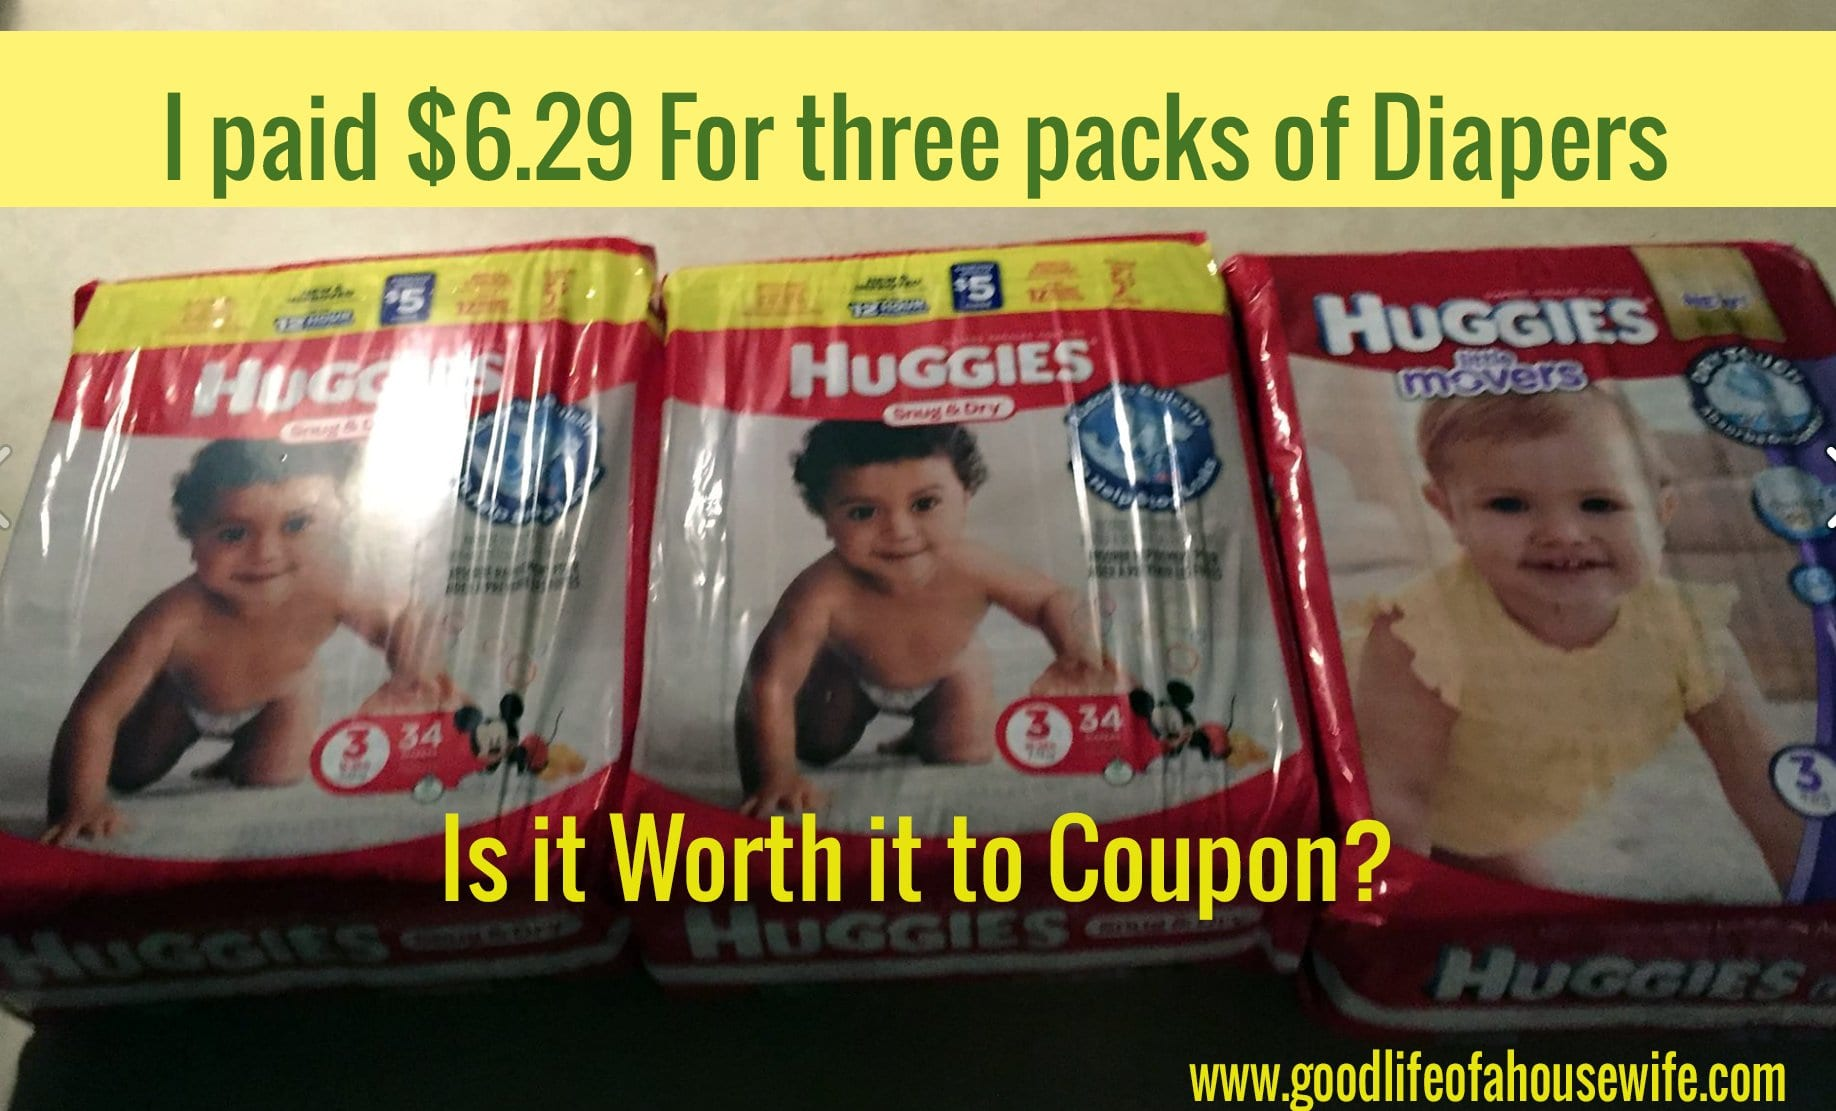 How to get deals on Diapers www.goodlifeofahousewife.com